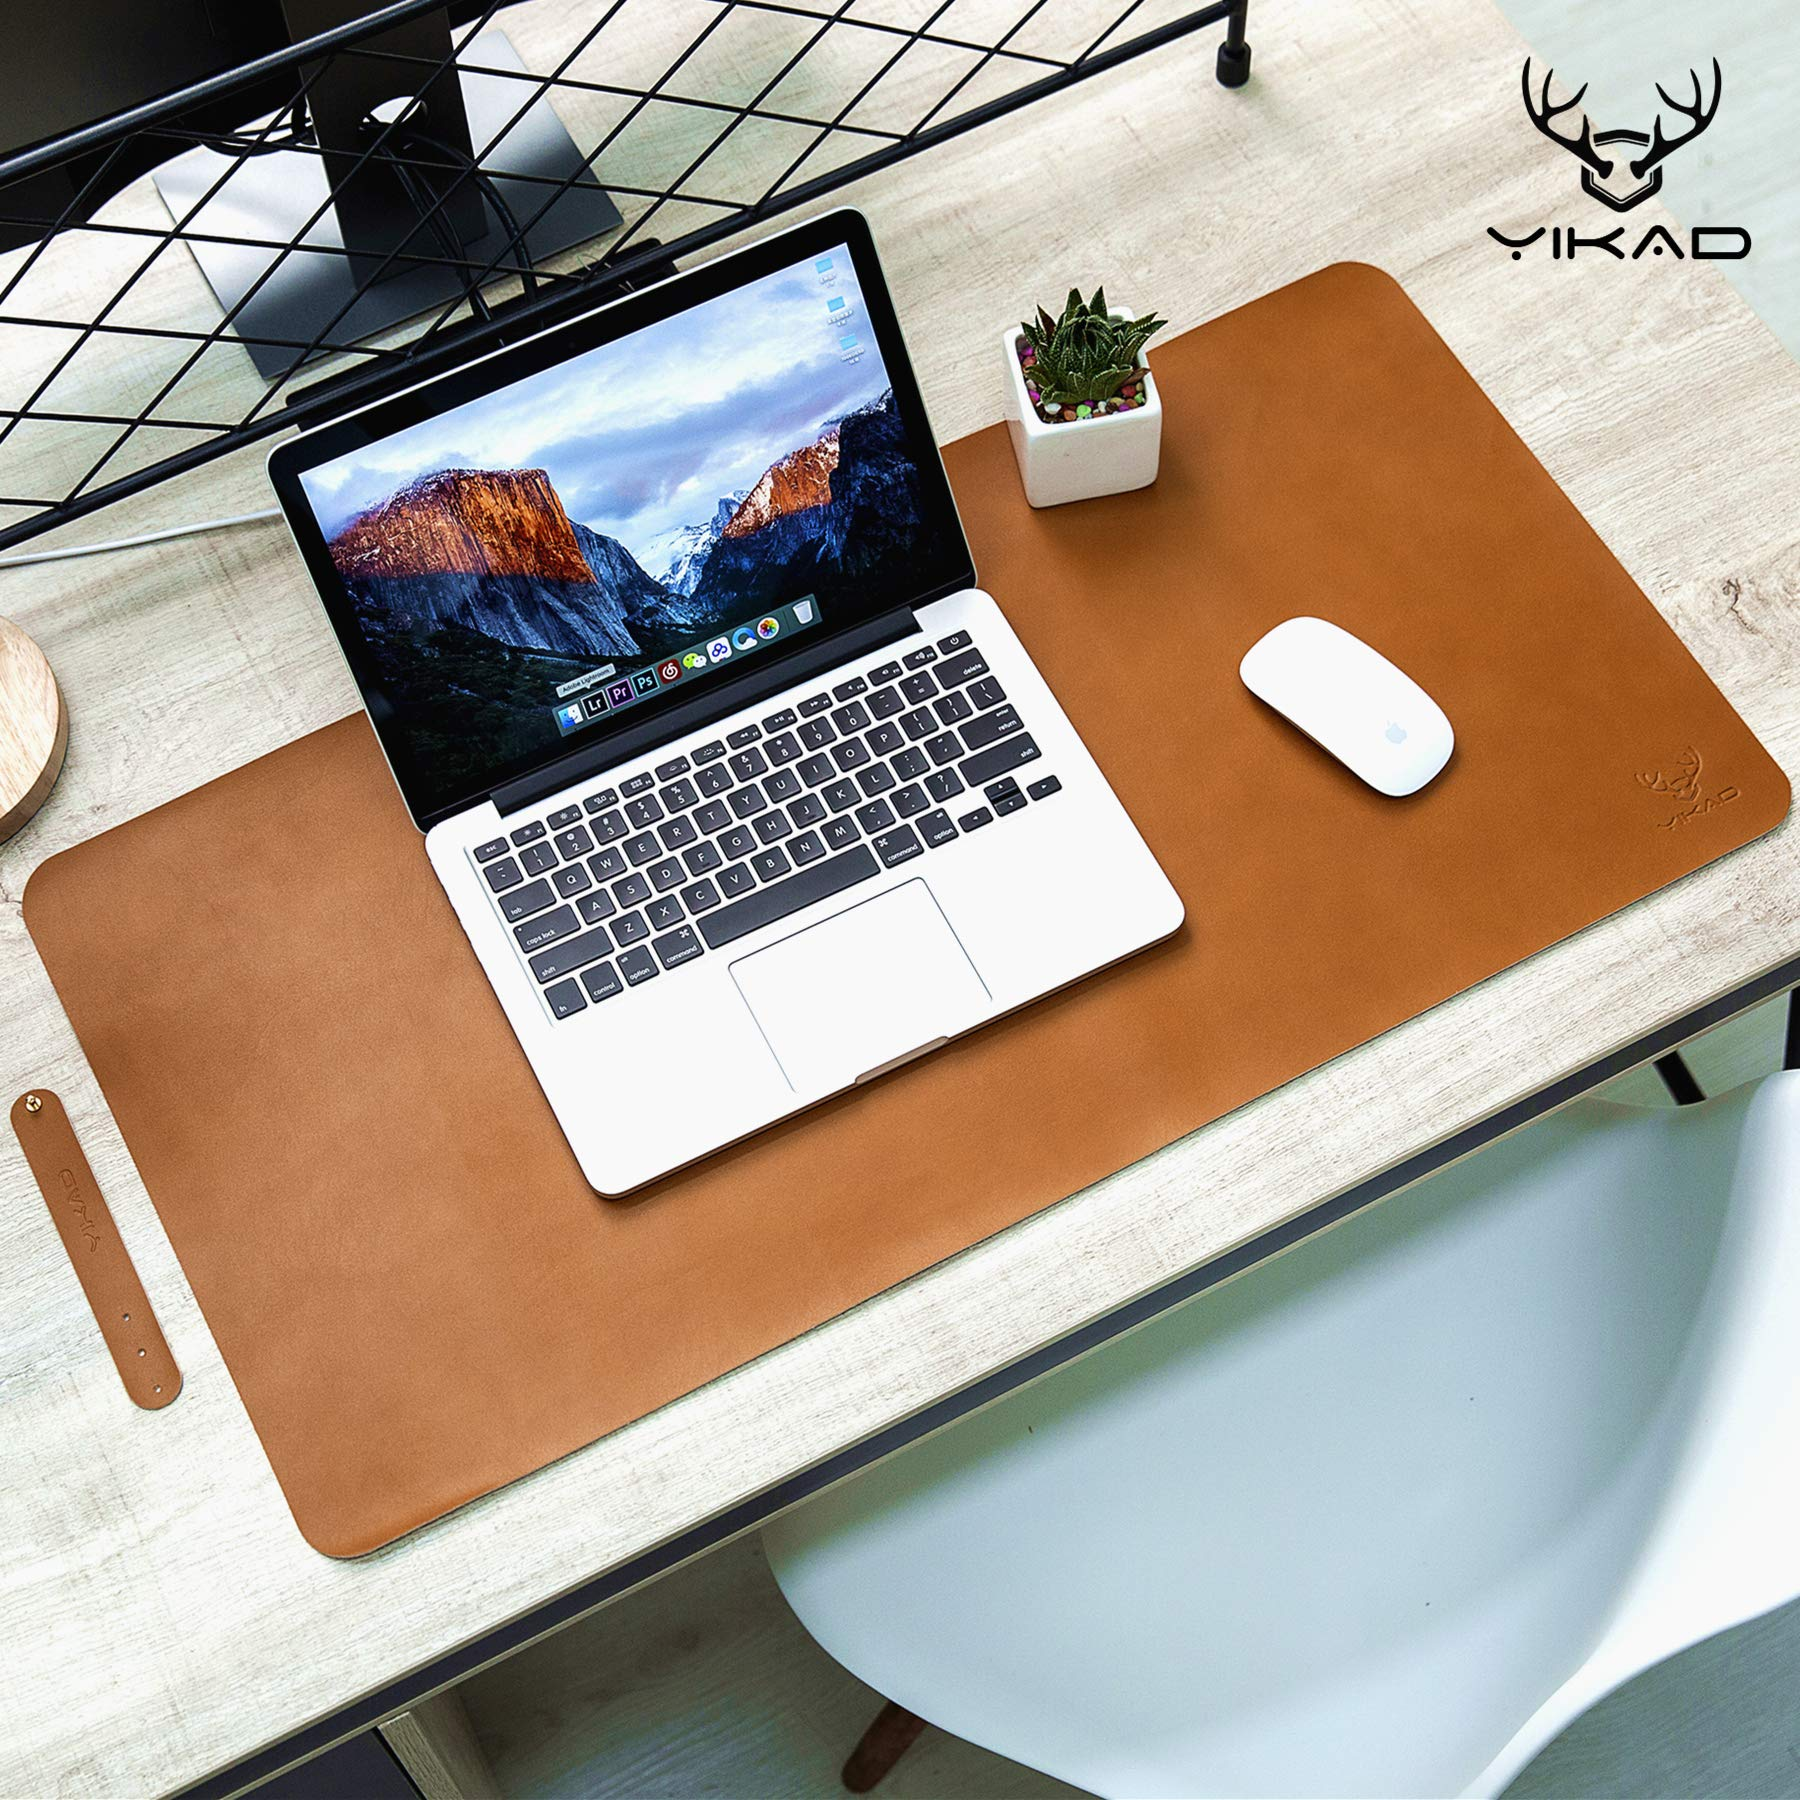 Yikda Extended Leather Gaming Mouse Pad/Mat, Large Office Writing Desk Computer Leather Mat Mousepad,Waterproof,Ultra Thin 1.2mm - 31.5''x15.7'' (Brown) by Yikda